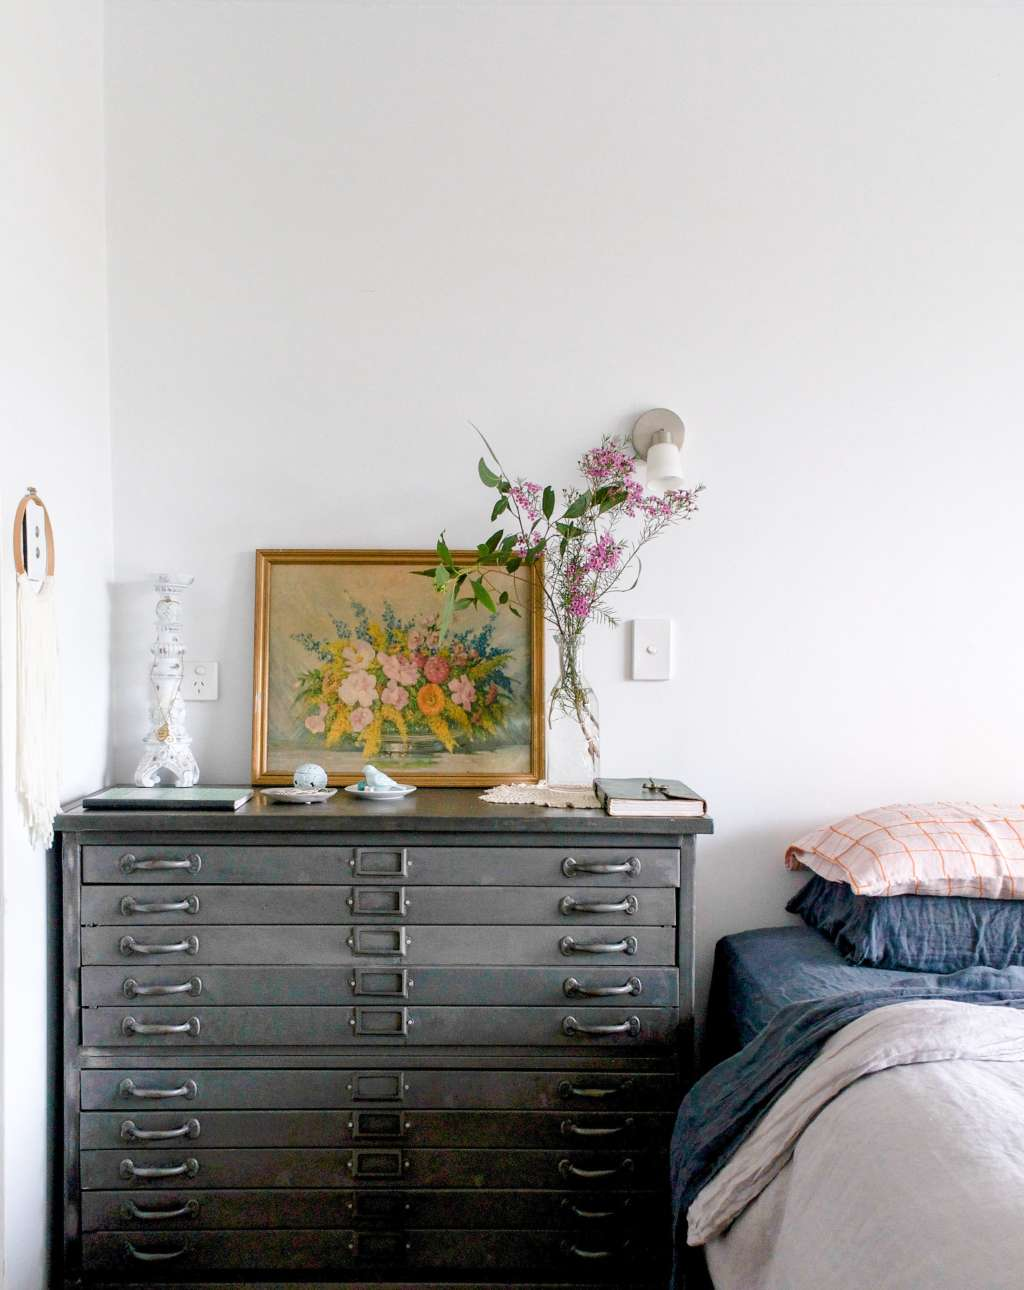 10 Ways To Invite Summer Into Your Home